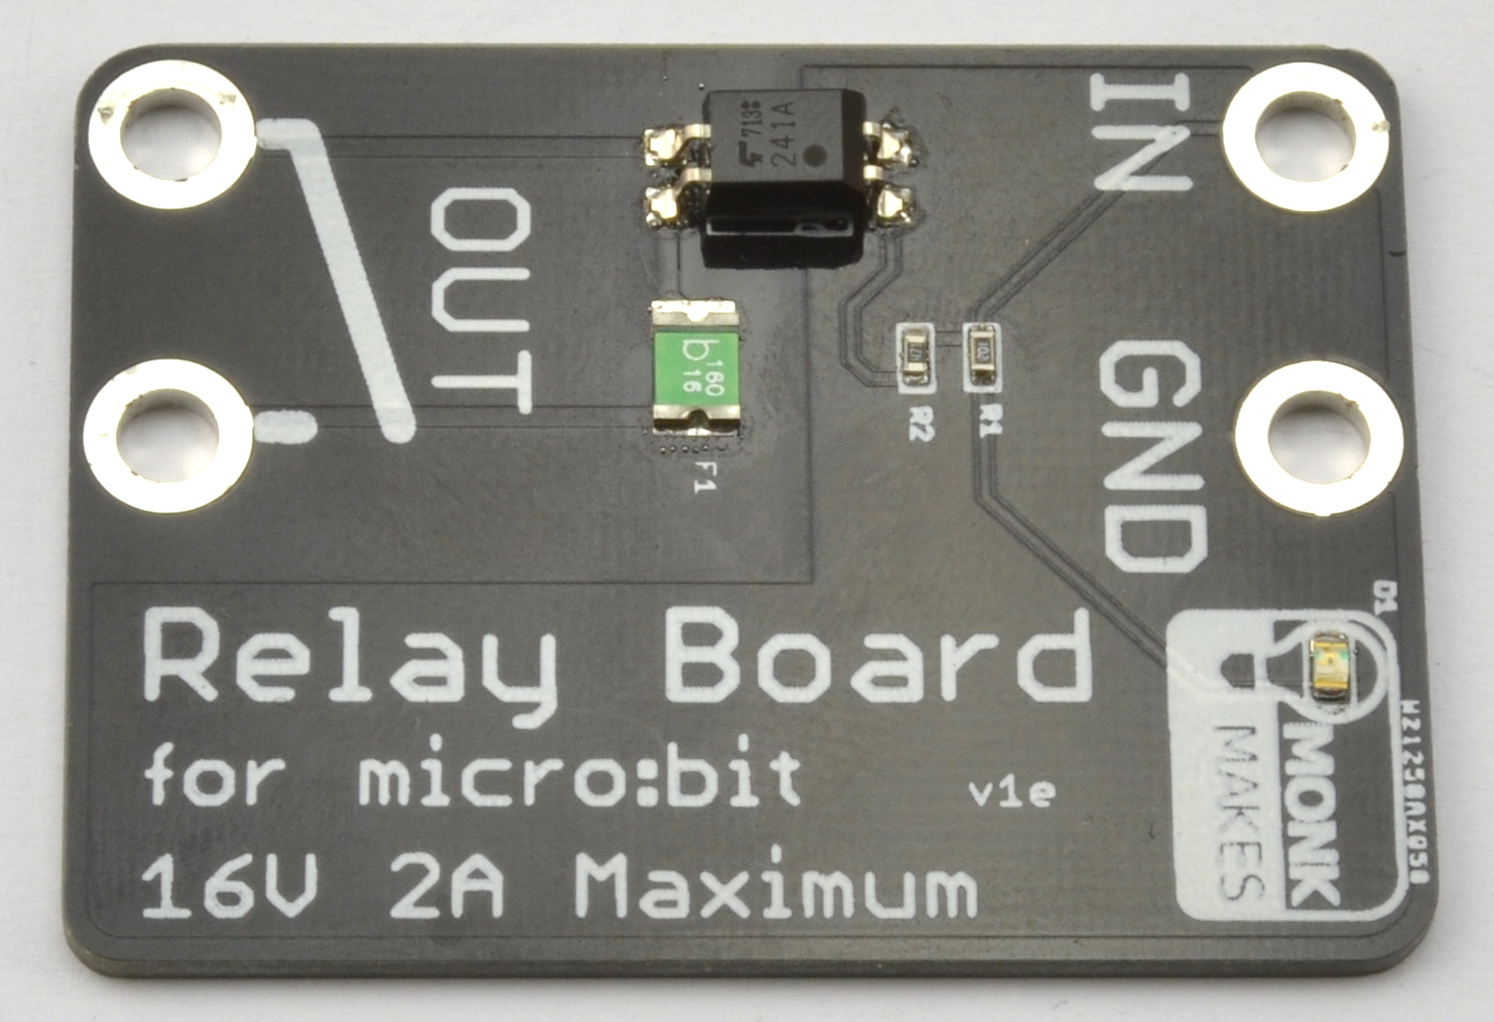 Relay for micro:bit